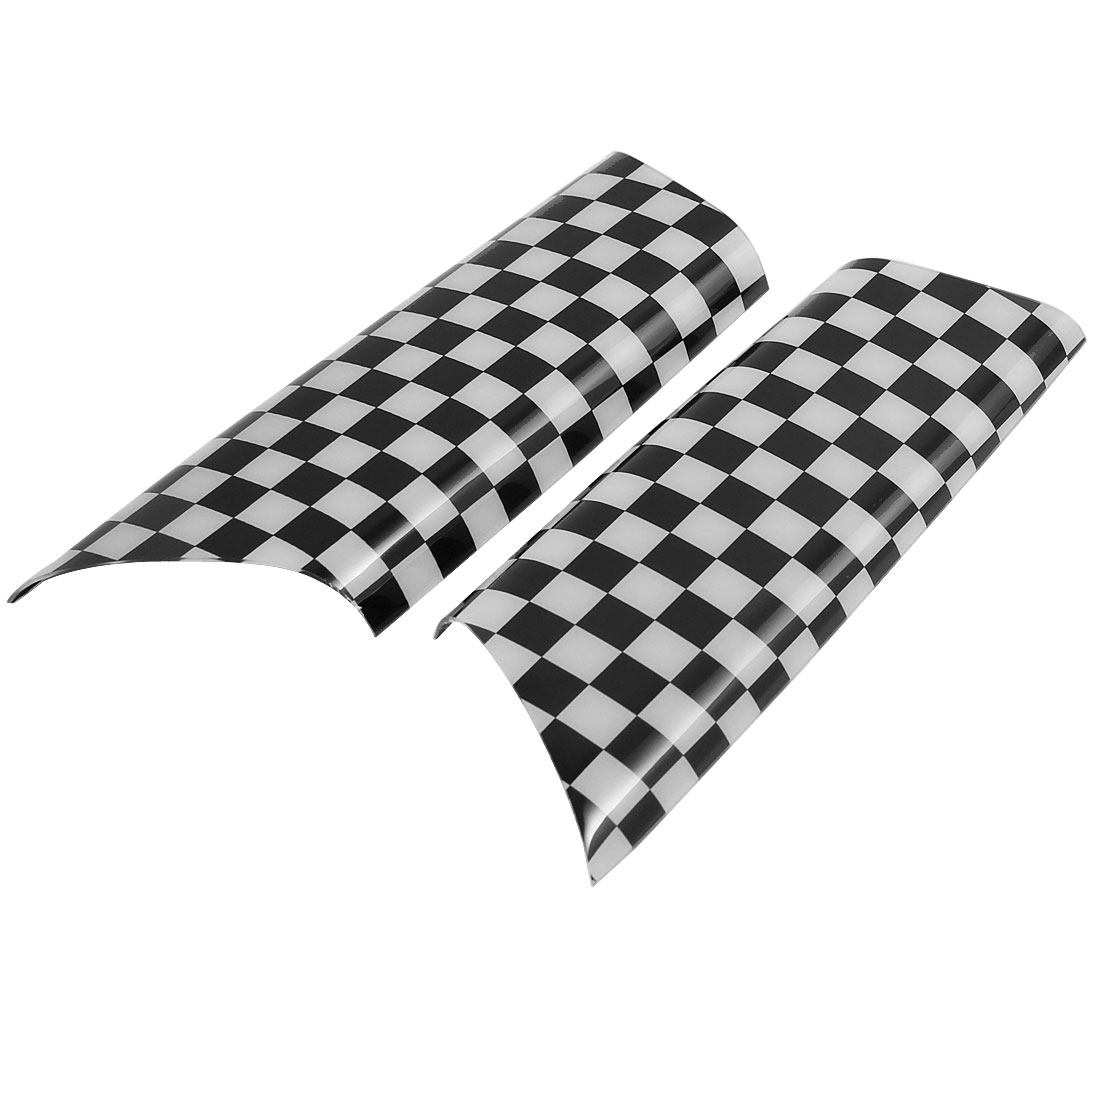 2 Pcs Black White Check Print Car Door Handle Cover for BMW Mini R55 R56 R57 R58 R59